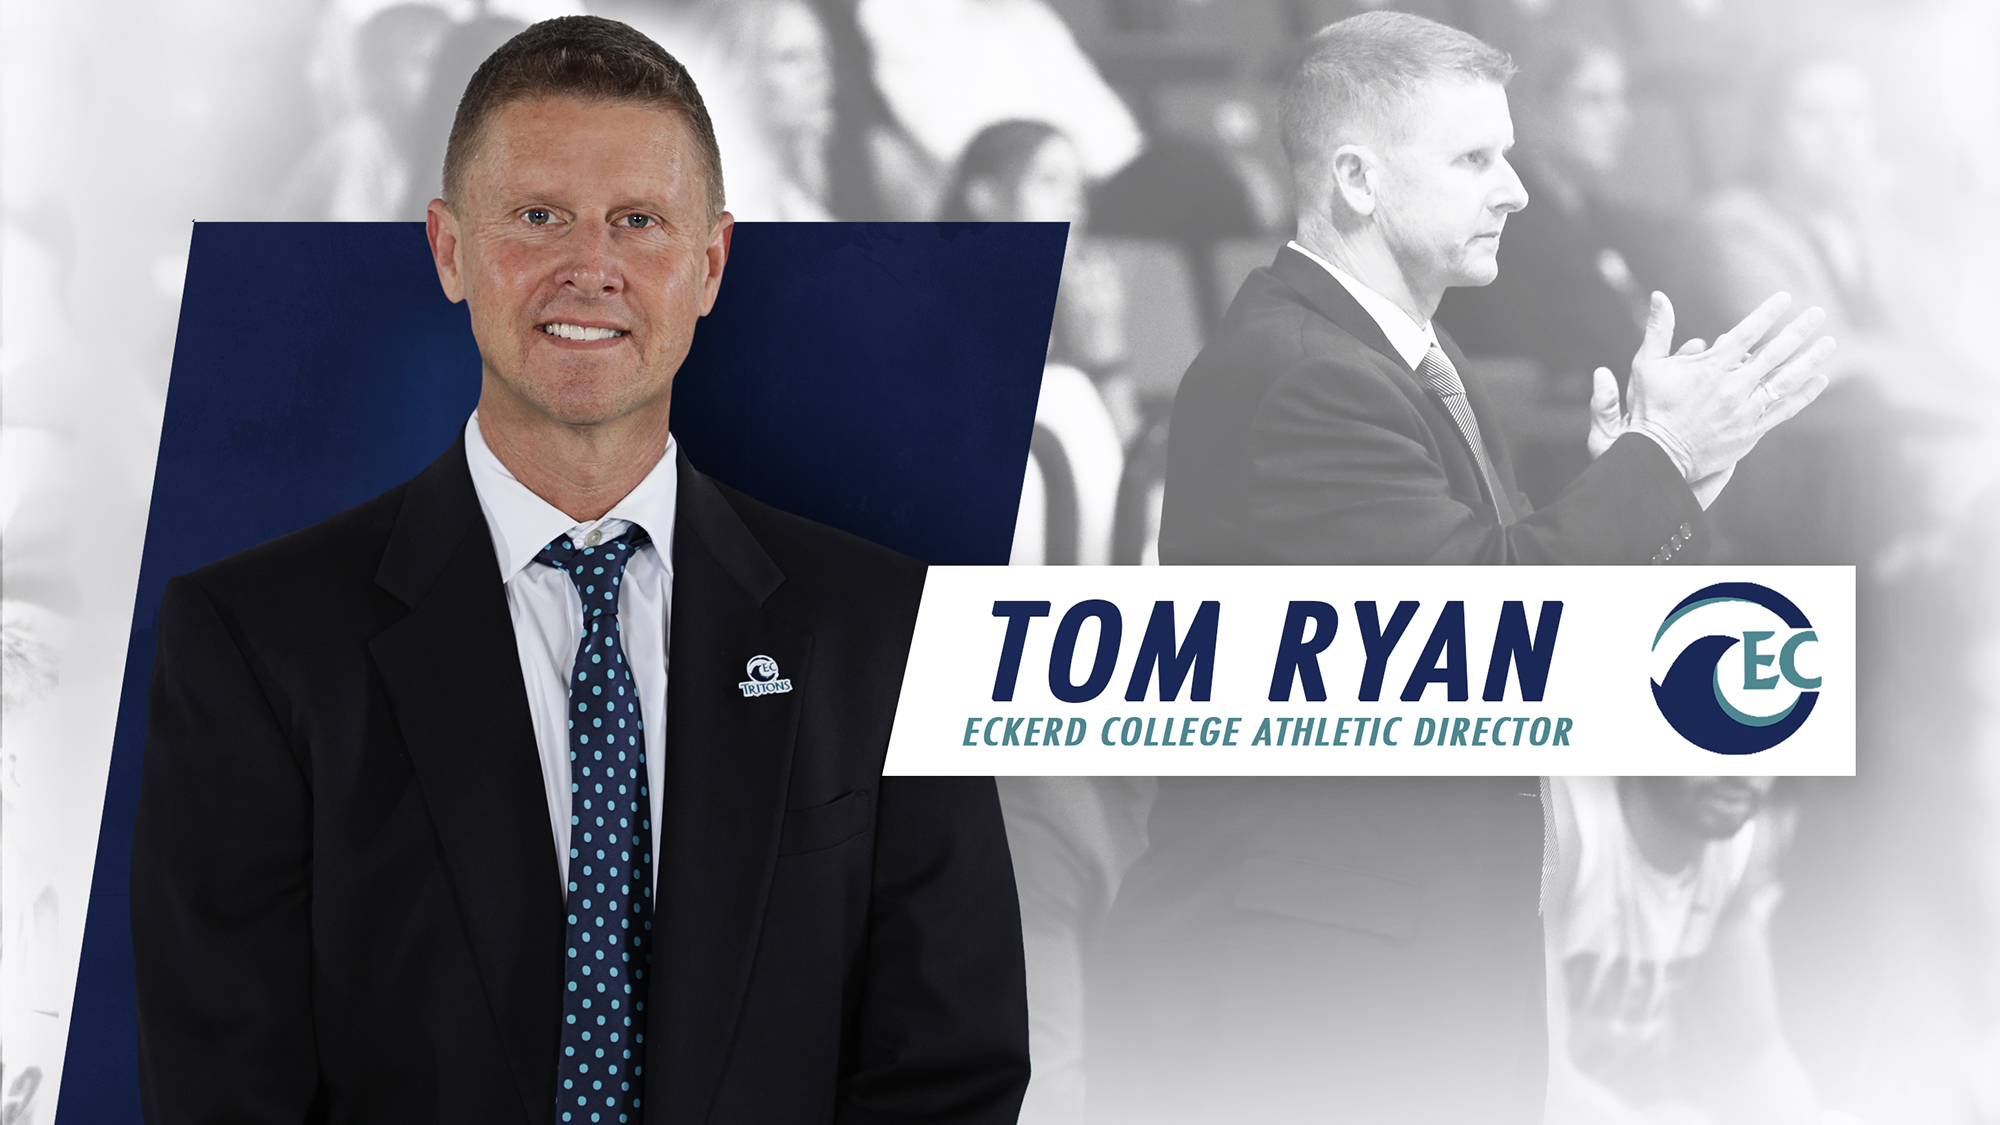 Tom Ryan Named Eckerd College Director Of Athletics Eckerd College